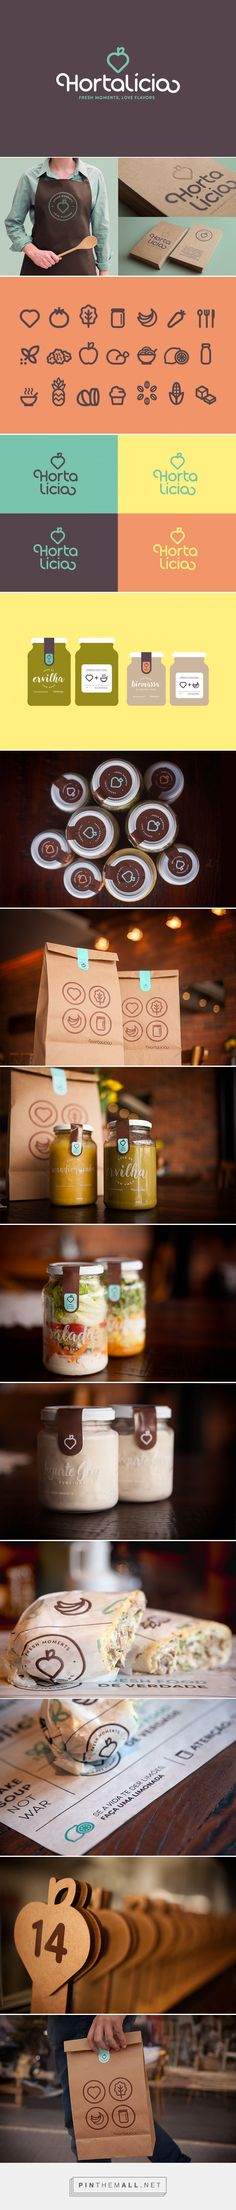 Hortalícia on Behance curated by Packaging Diva PD. giving life to branding packaging that combines healthy food to practicality, without giving up the flavor and home's warmth.